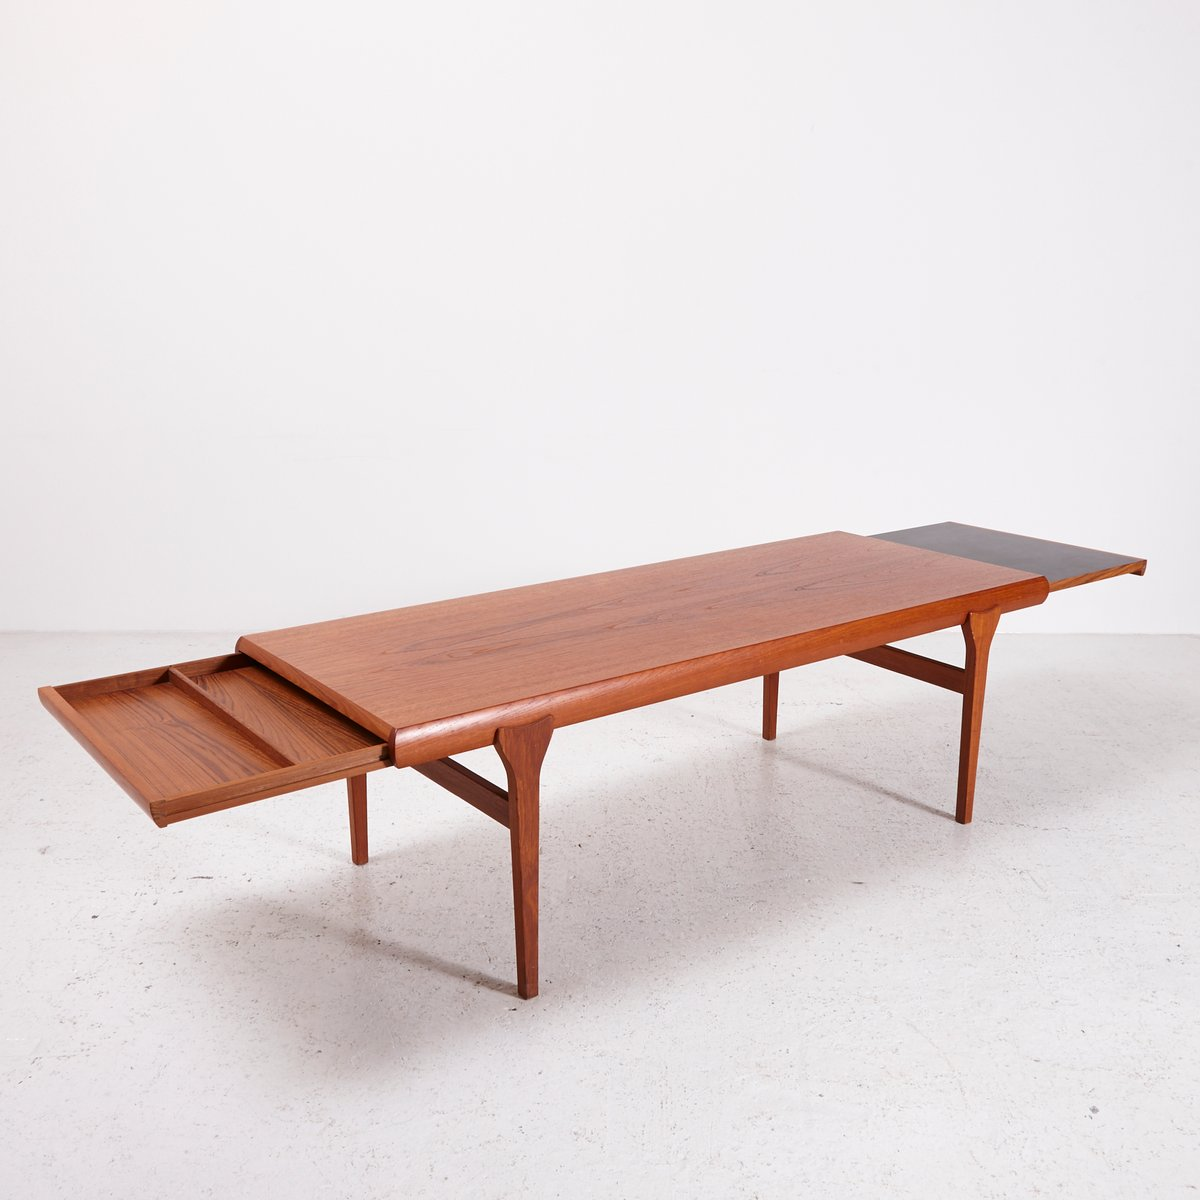 Teak Coffee Table By Johannes Andersen For Cfc Silkeborg 1960s For Sale At Pamono